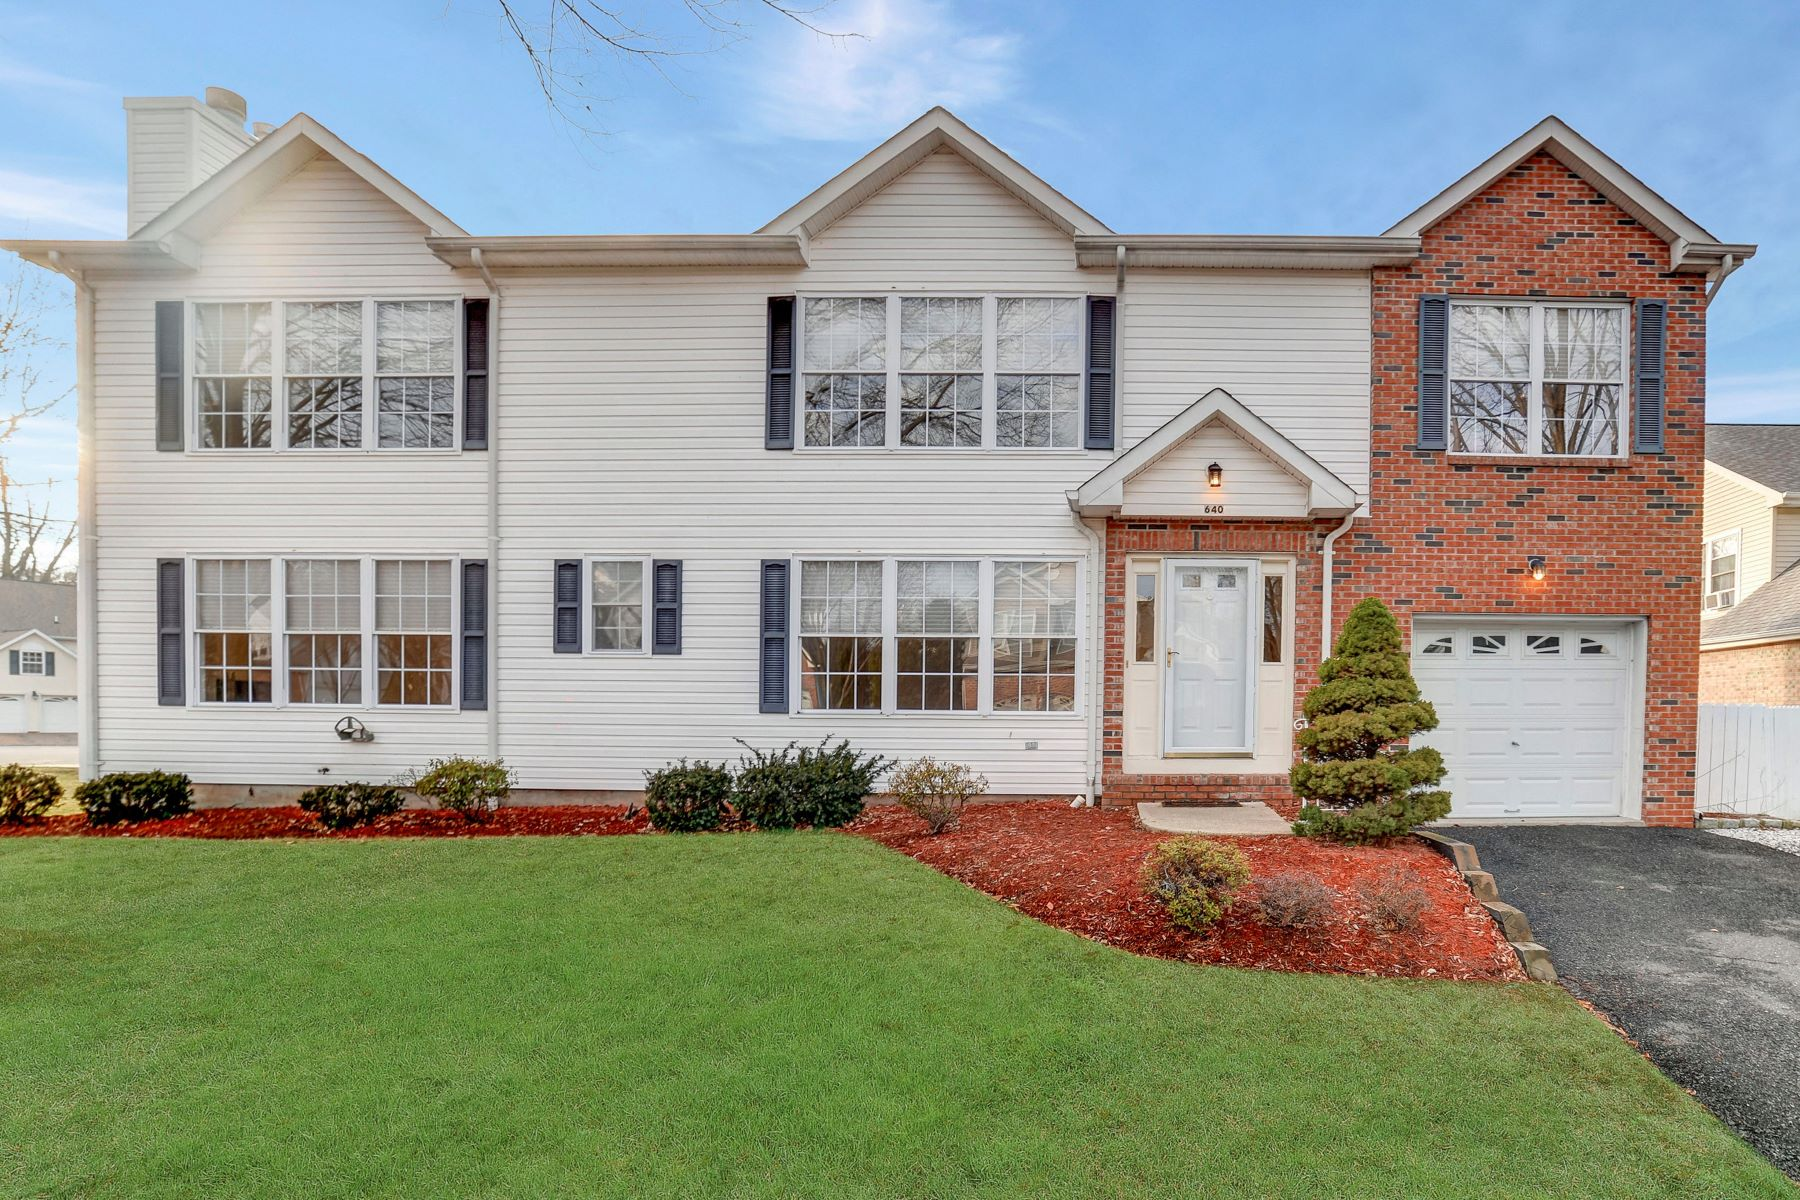 House for Sale at Spacious Colonial on Cul-De-Sac 640 Seagull Dr Paramus, New Jersey 07652 United States